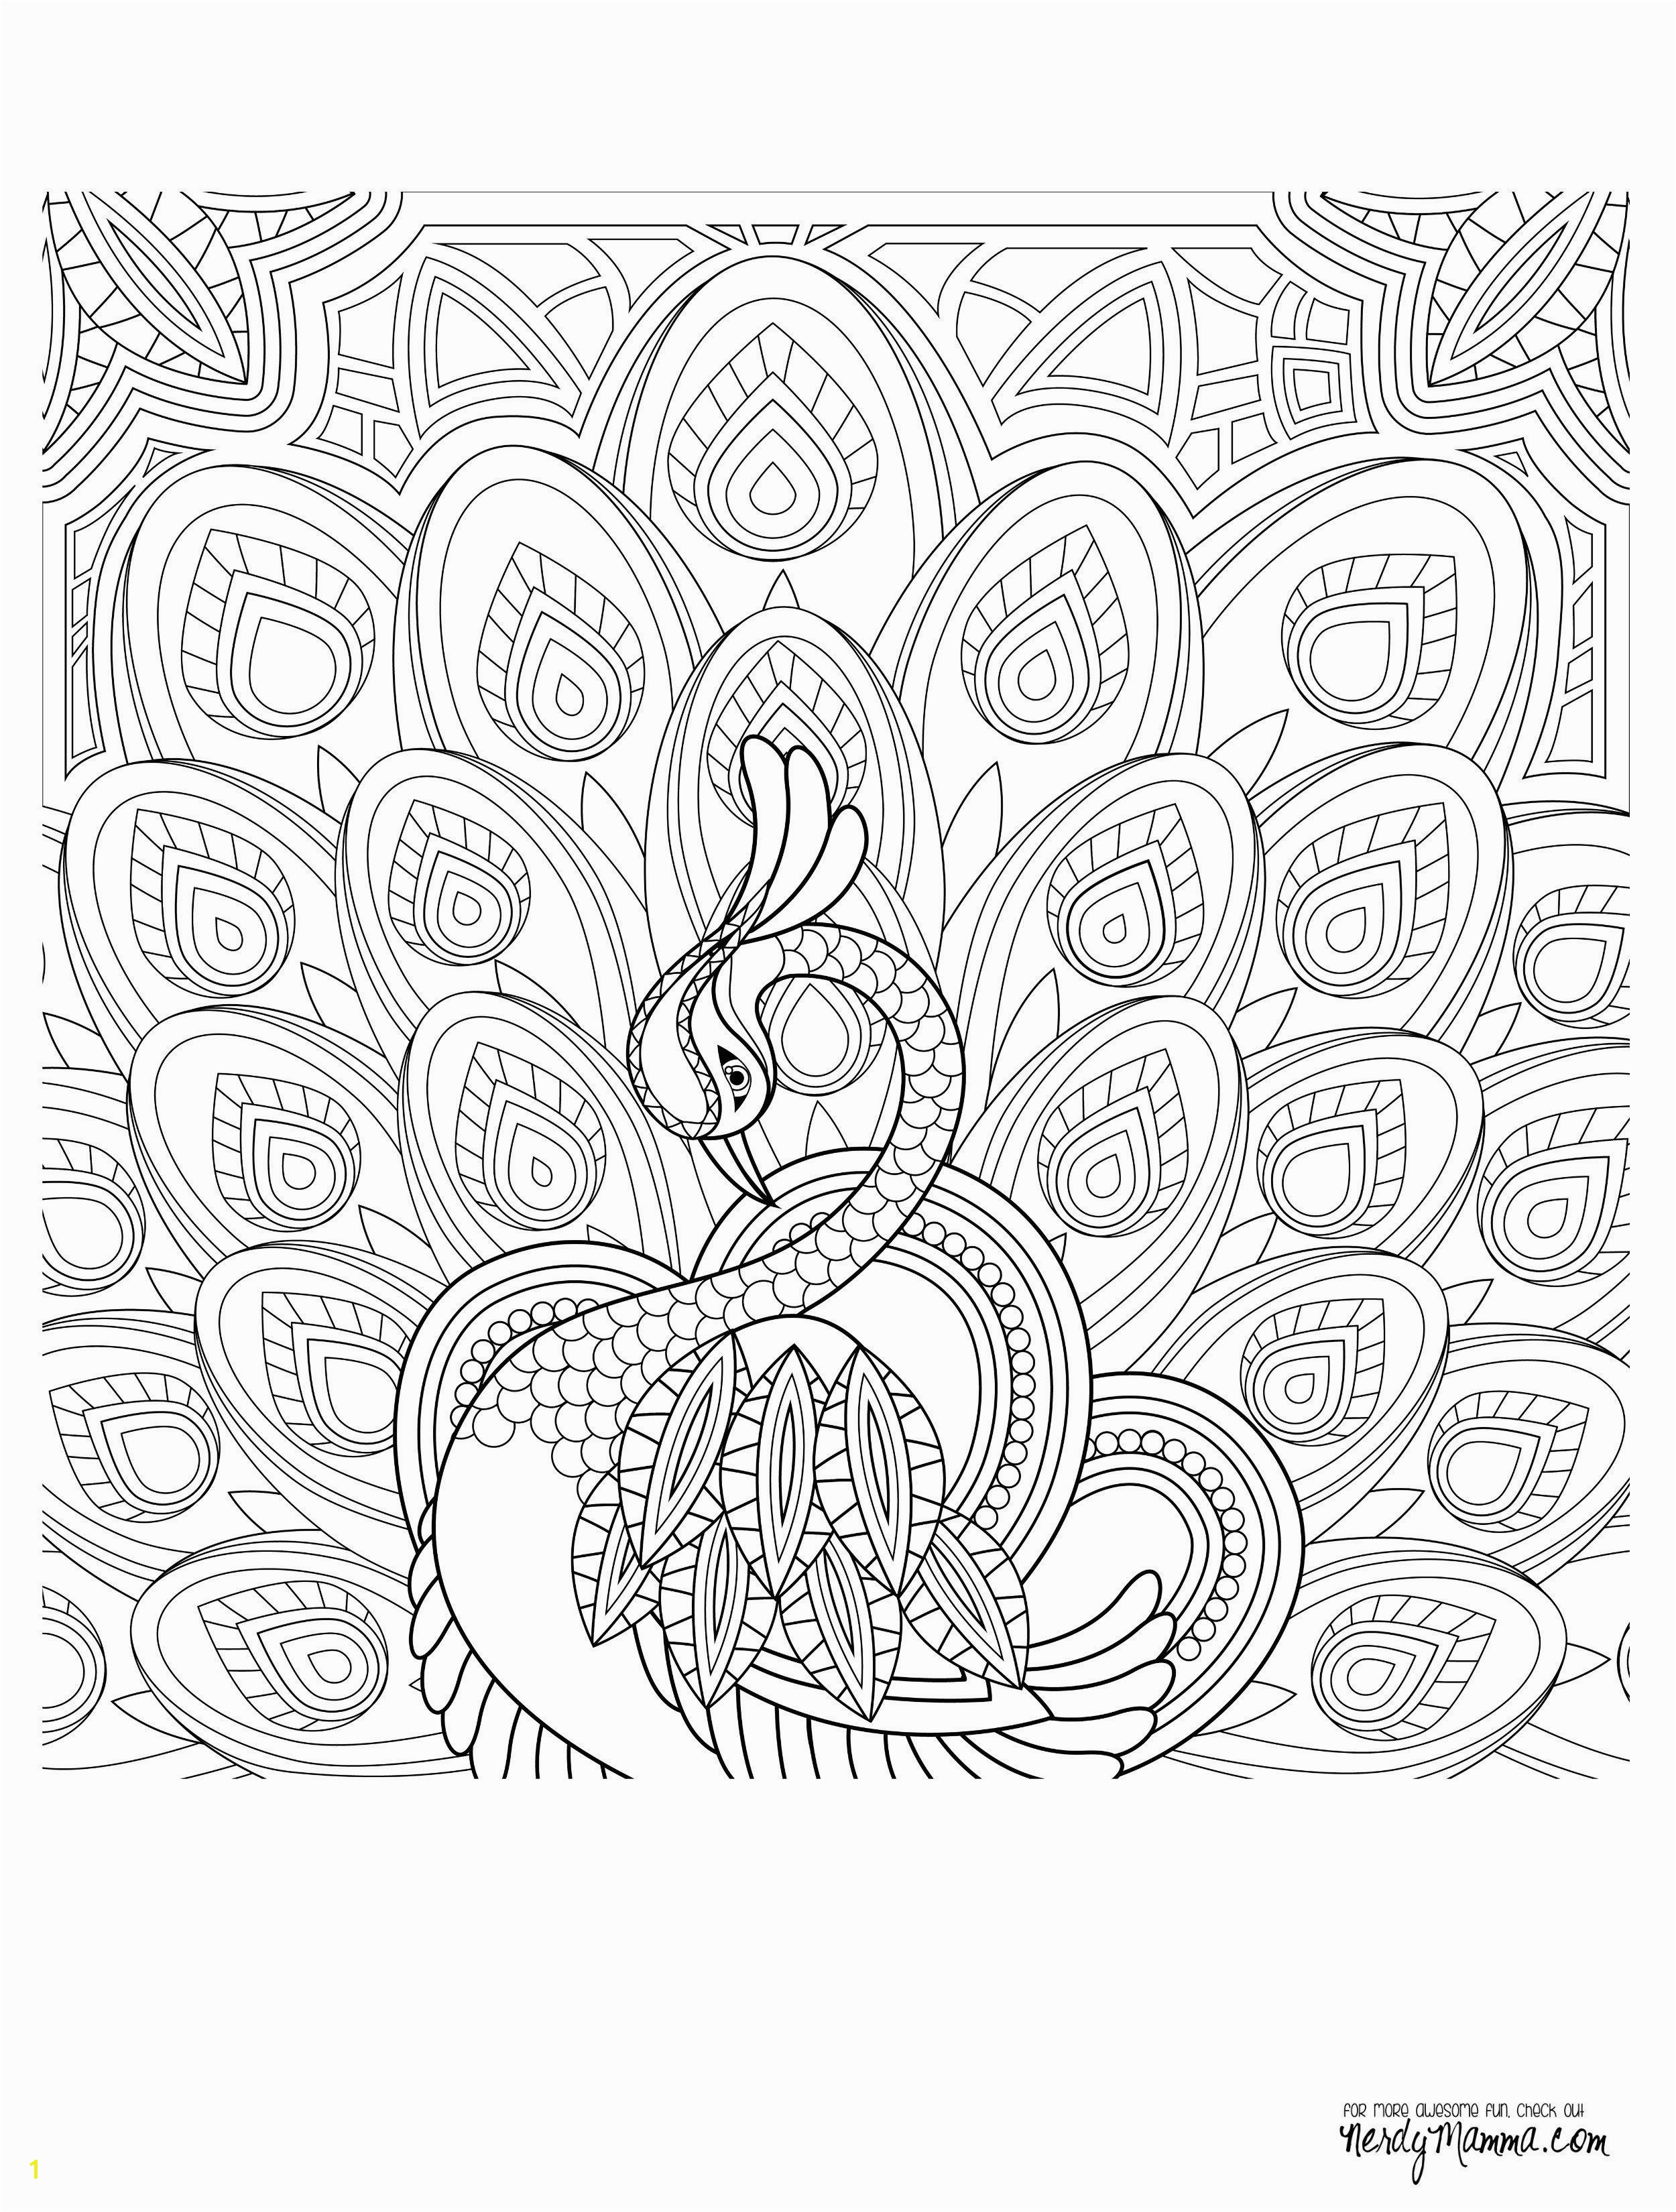 Free Download Coloring Pages for Adults